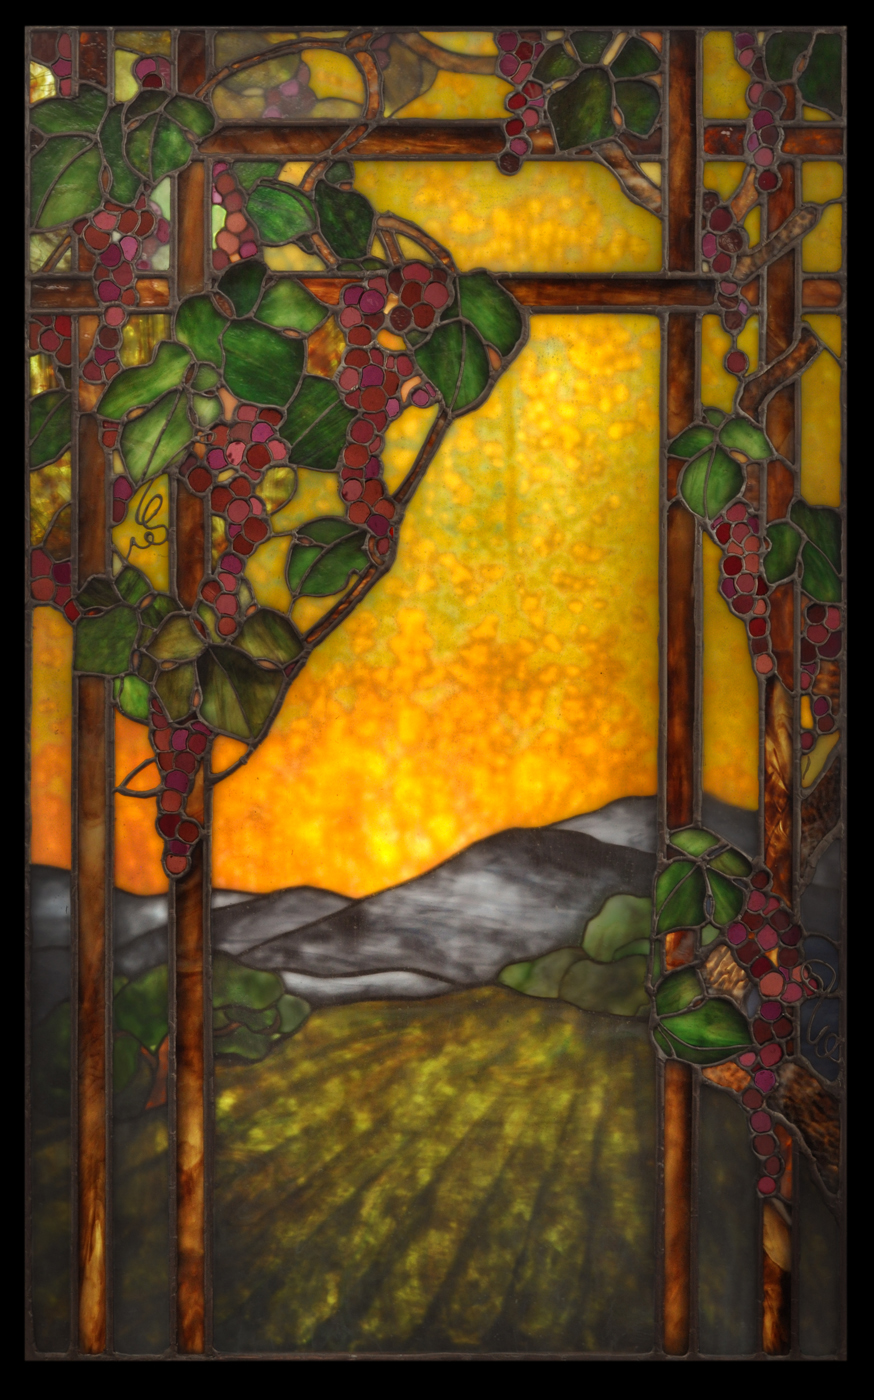 We created this plated landscape for a wine cellar at the McDonald Mansion in Santa Rosa, California.